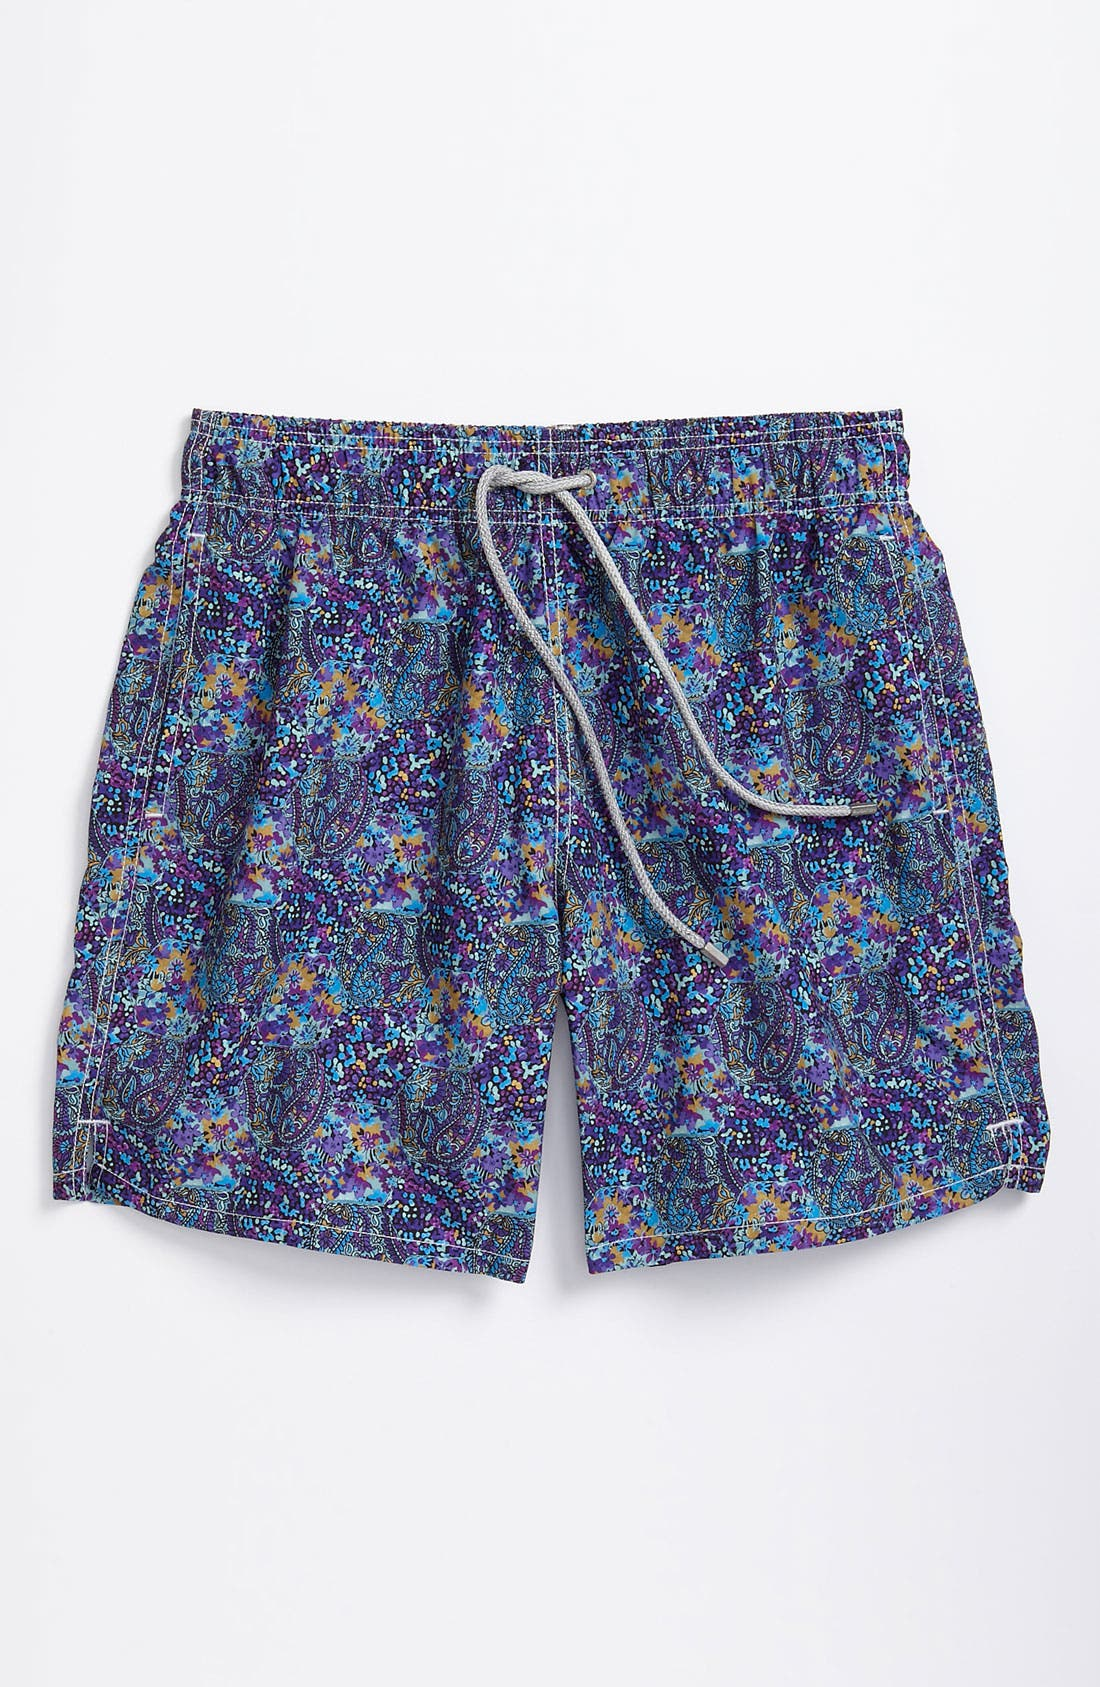 Alternate Image 1 Selected - Bugatchi Uomo Volley Swim Shorts (Men)